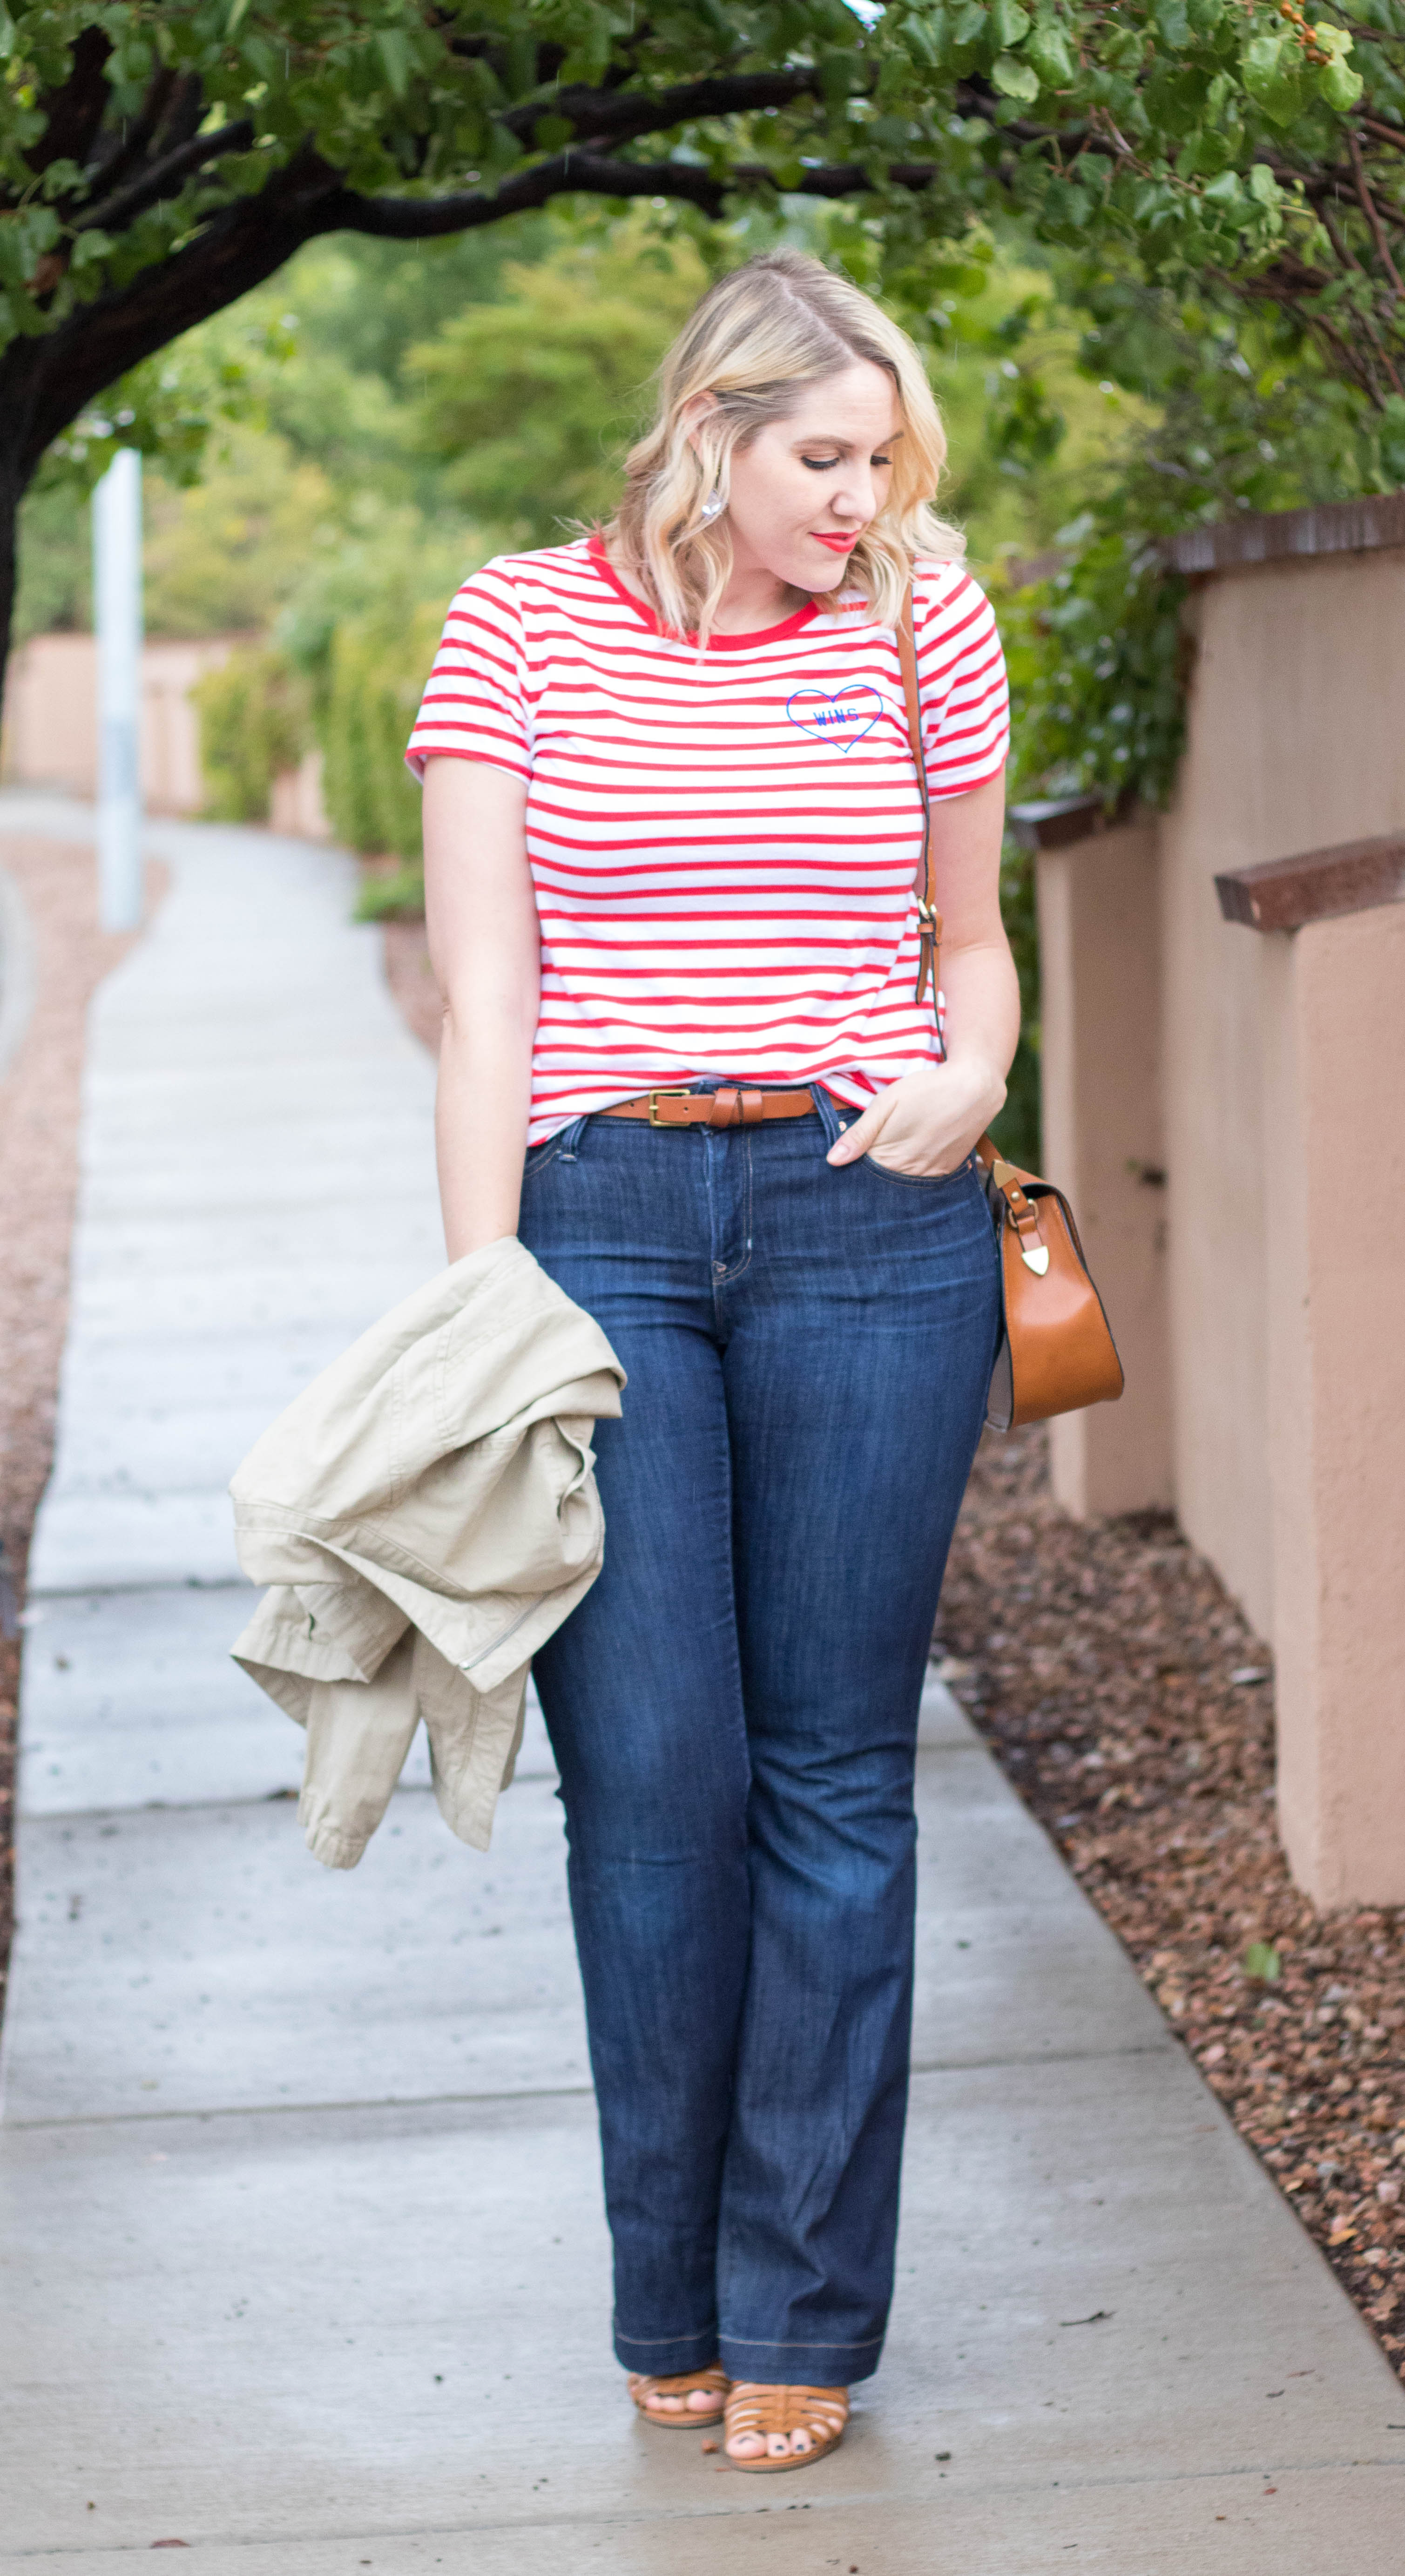 graphic striped tee outfit #oldnavy #fallstyle #flarejeans